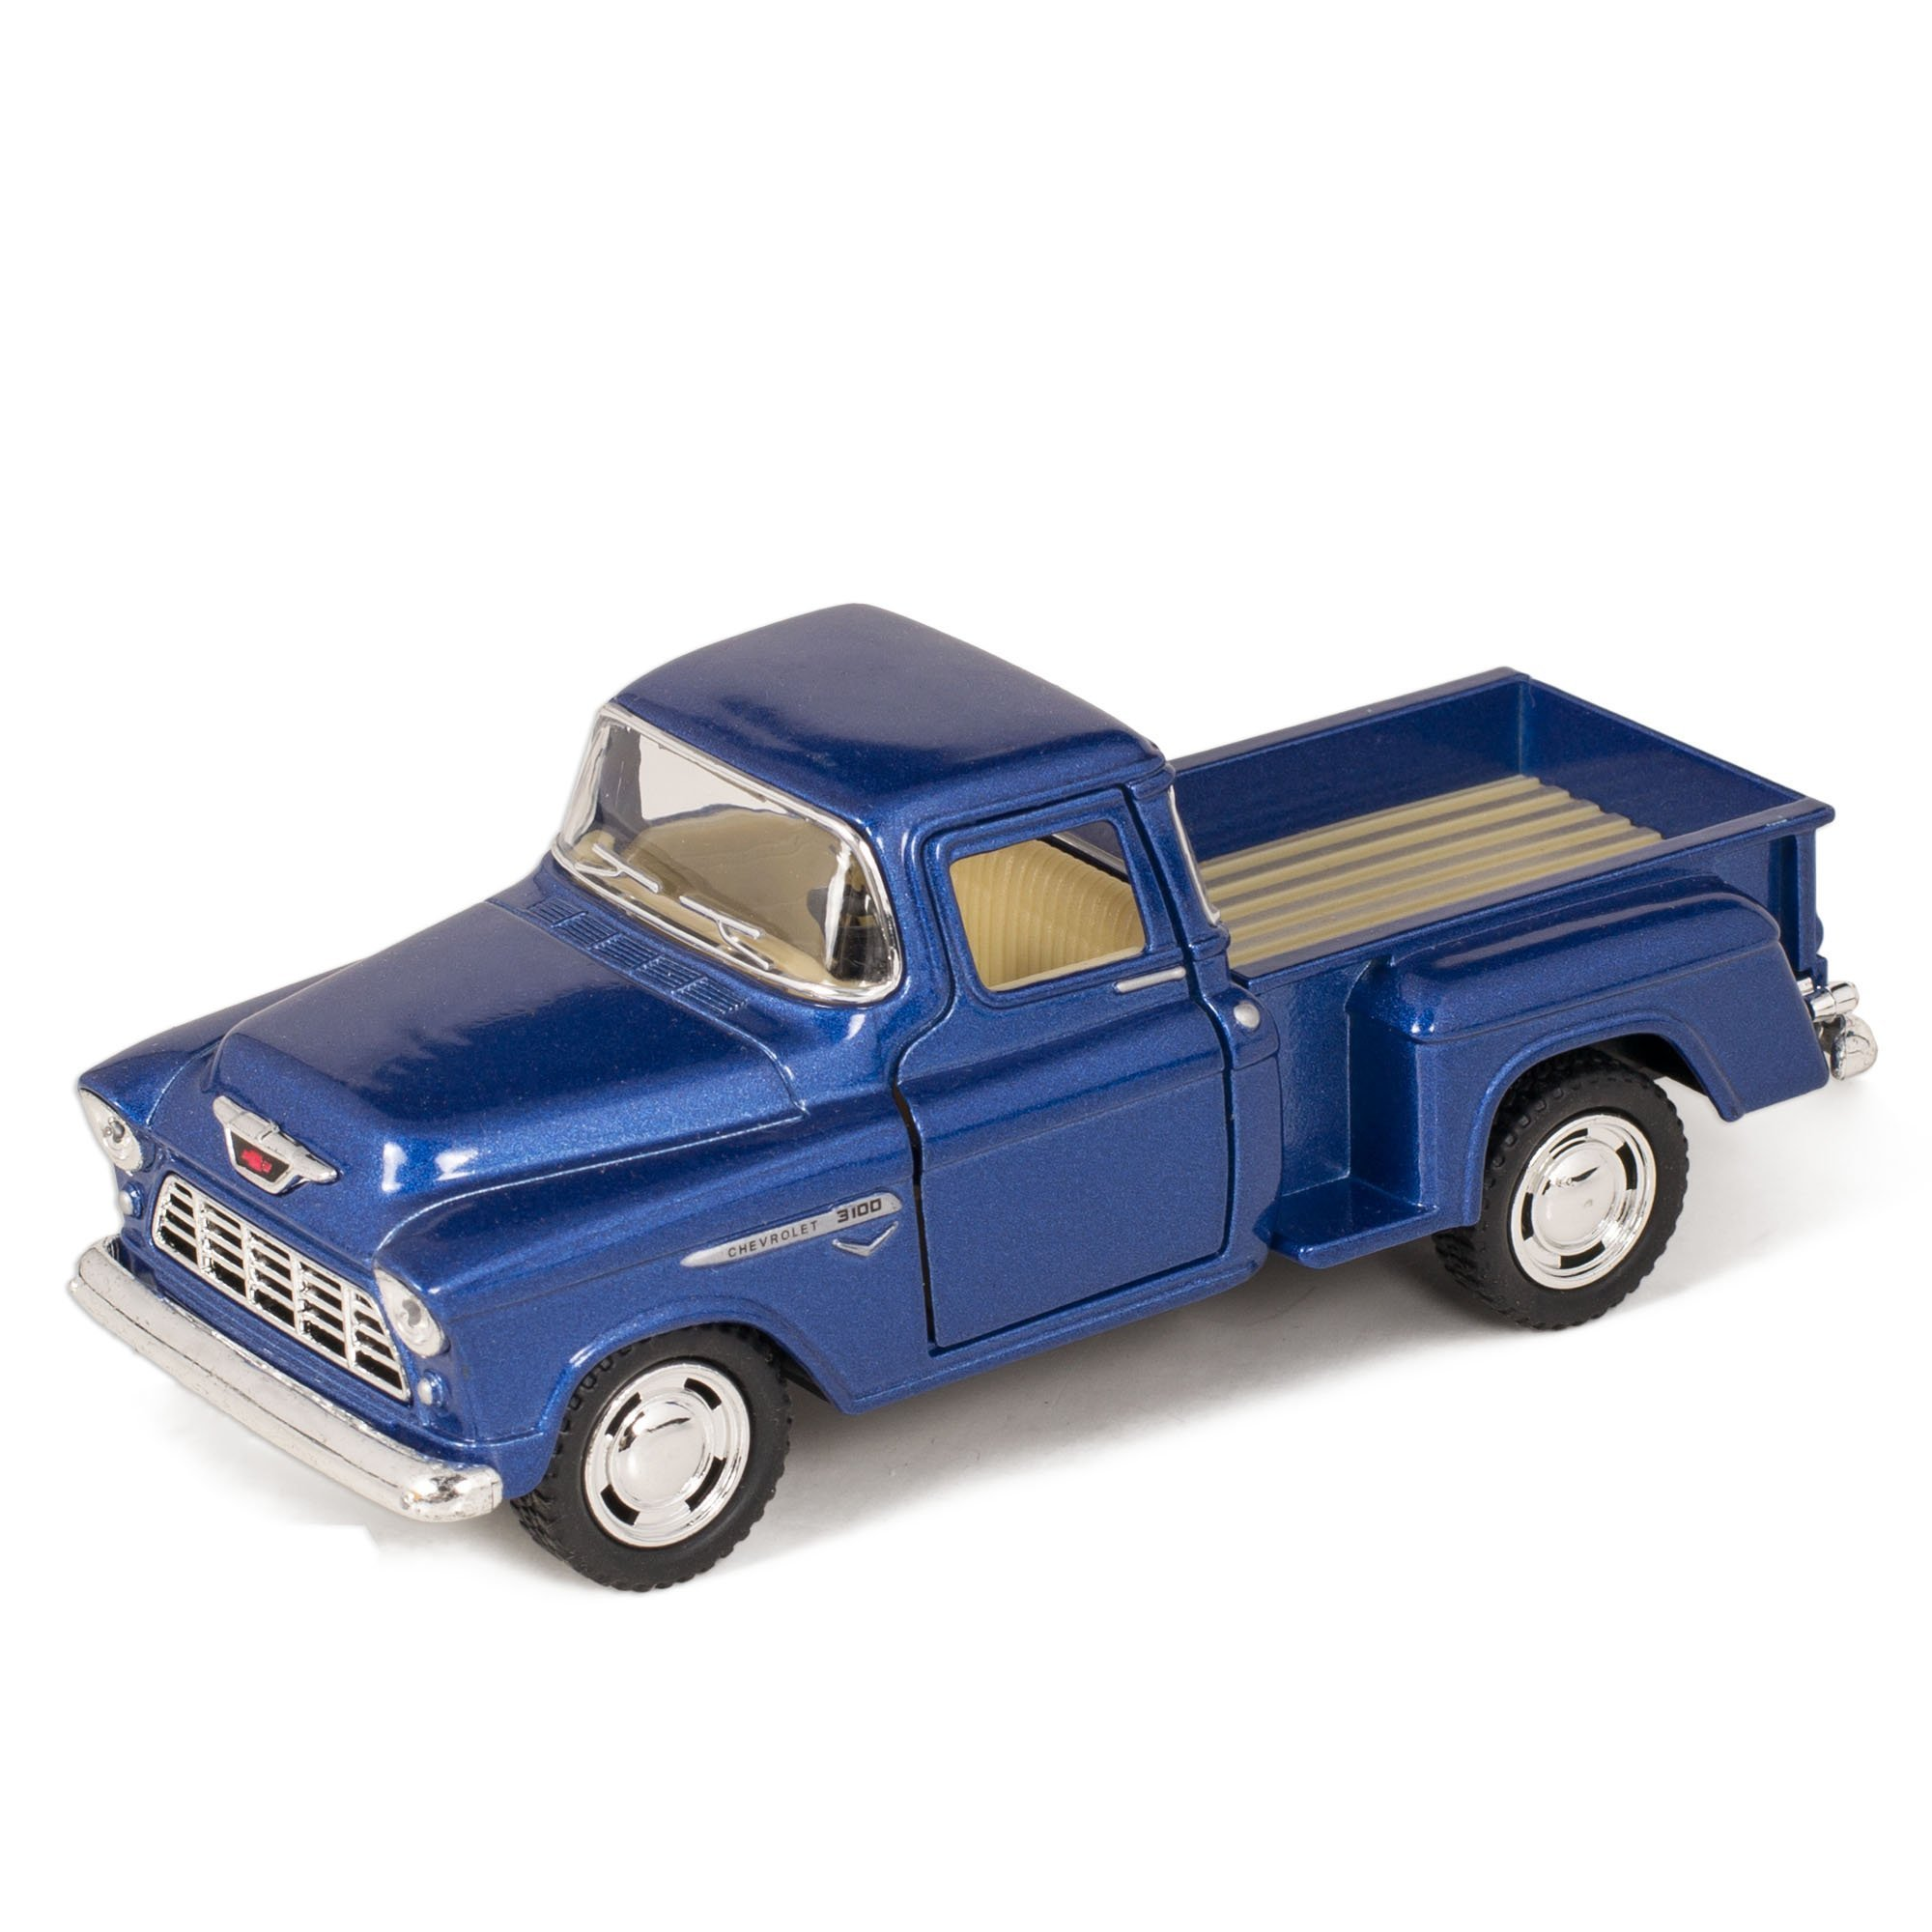 Kinsmart 1955 Chevy Step Side Pick-Up Die Cast Collectible Toy Truck, Blue